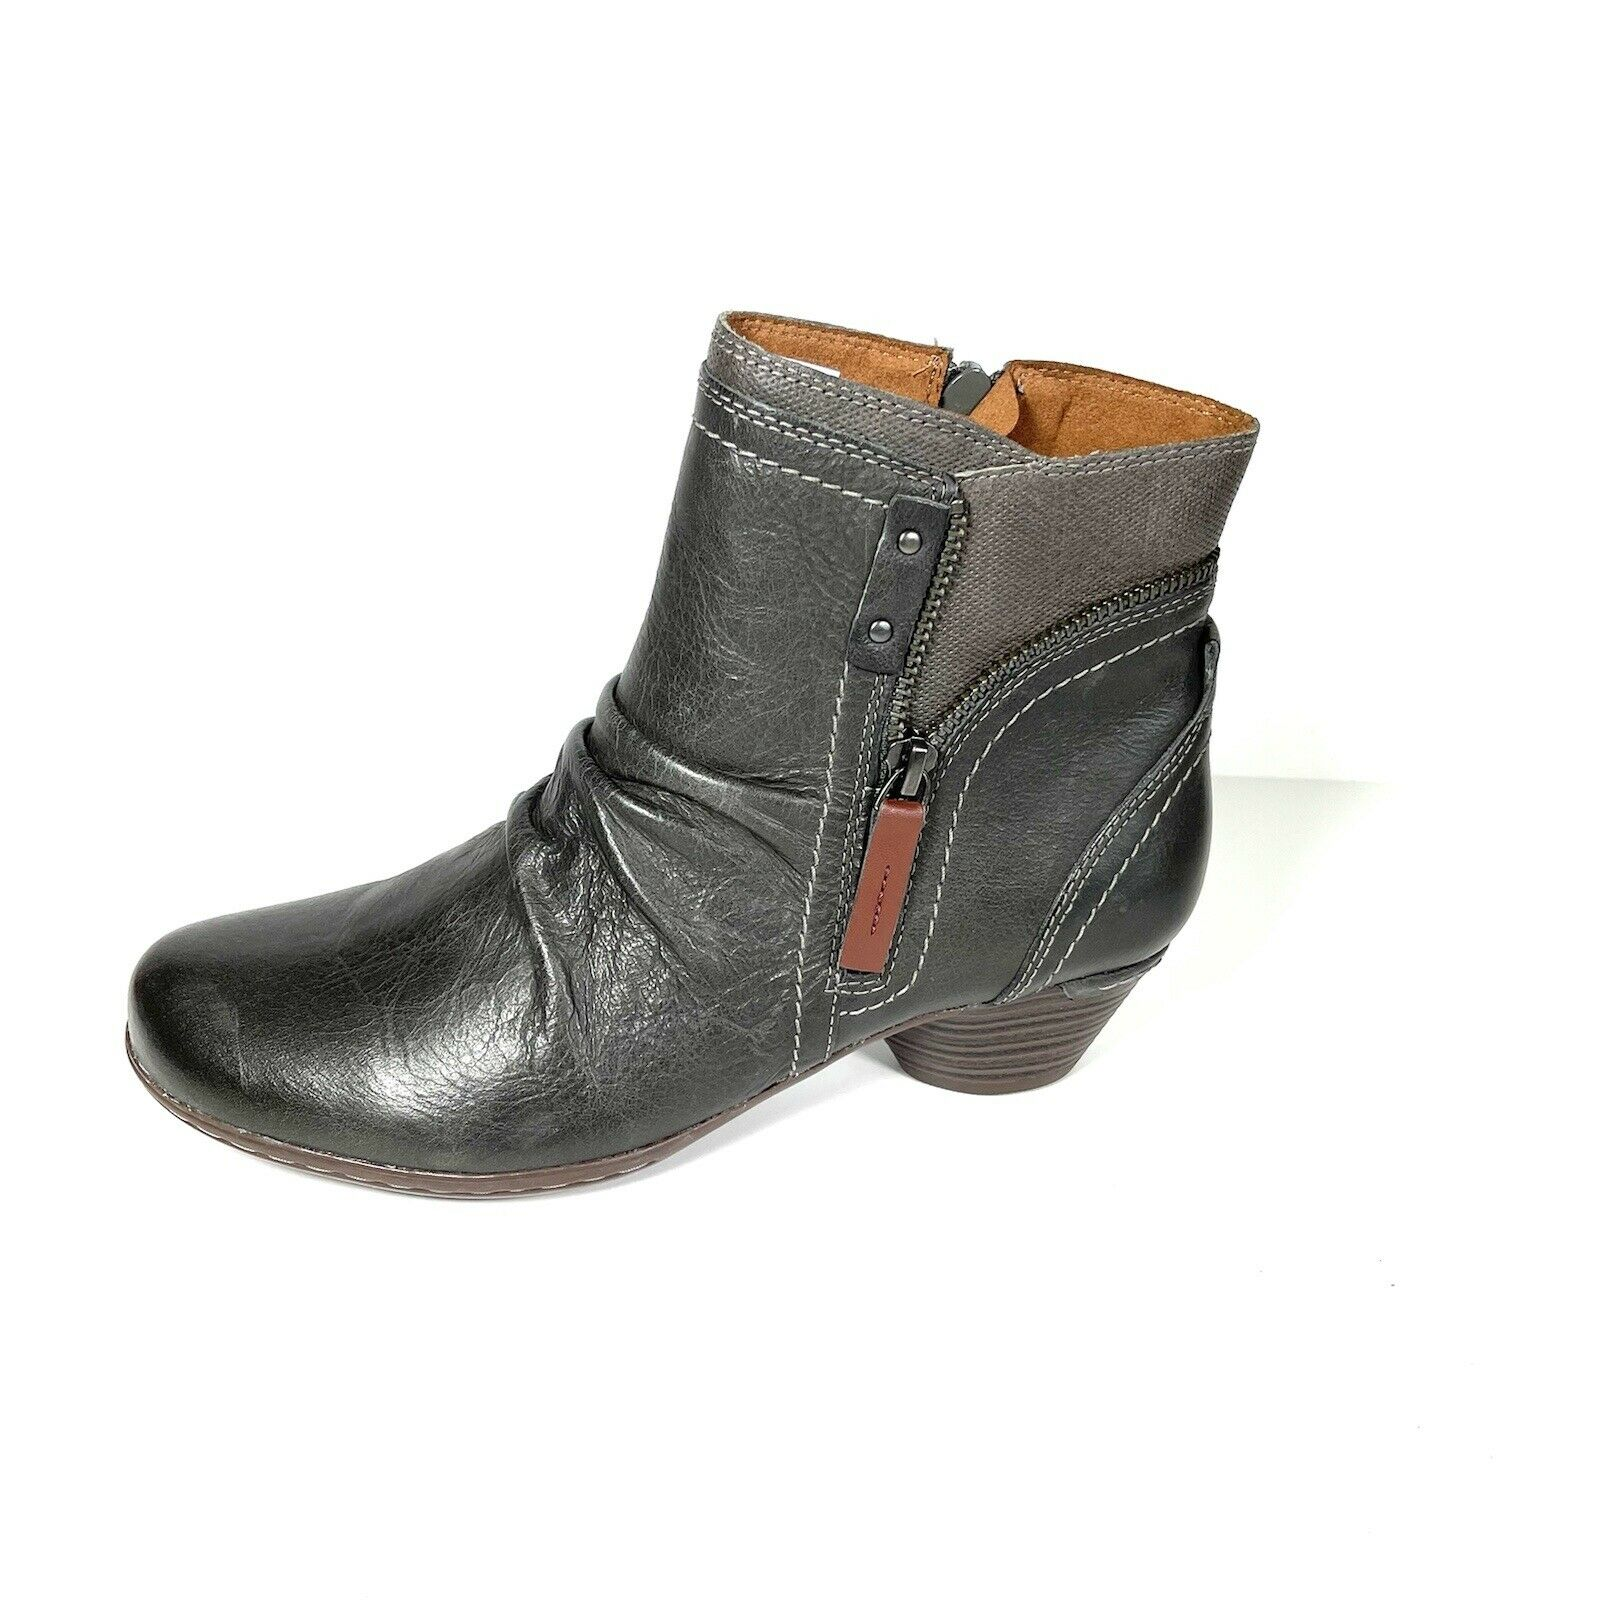 New Rockport Cobb Hill Womens Ankle Boots Black Leather Size 7